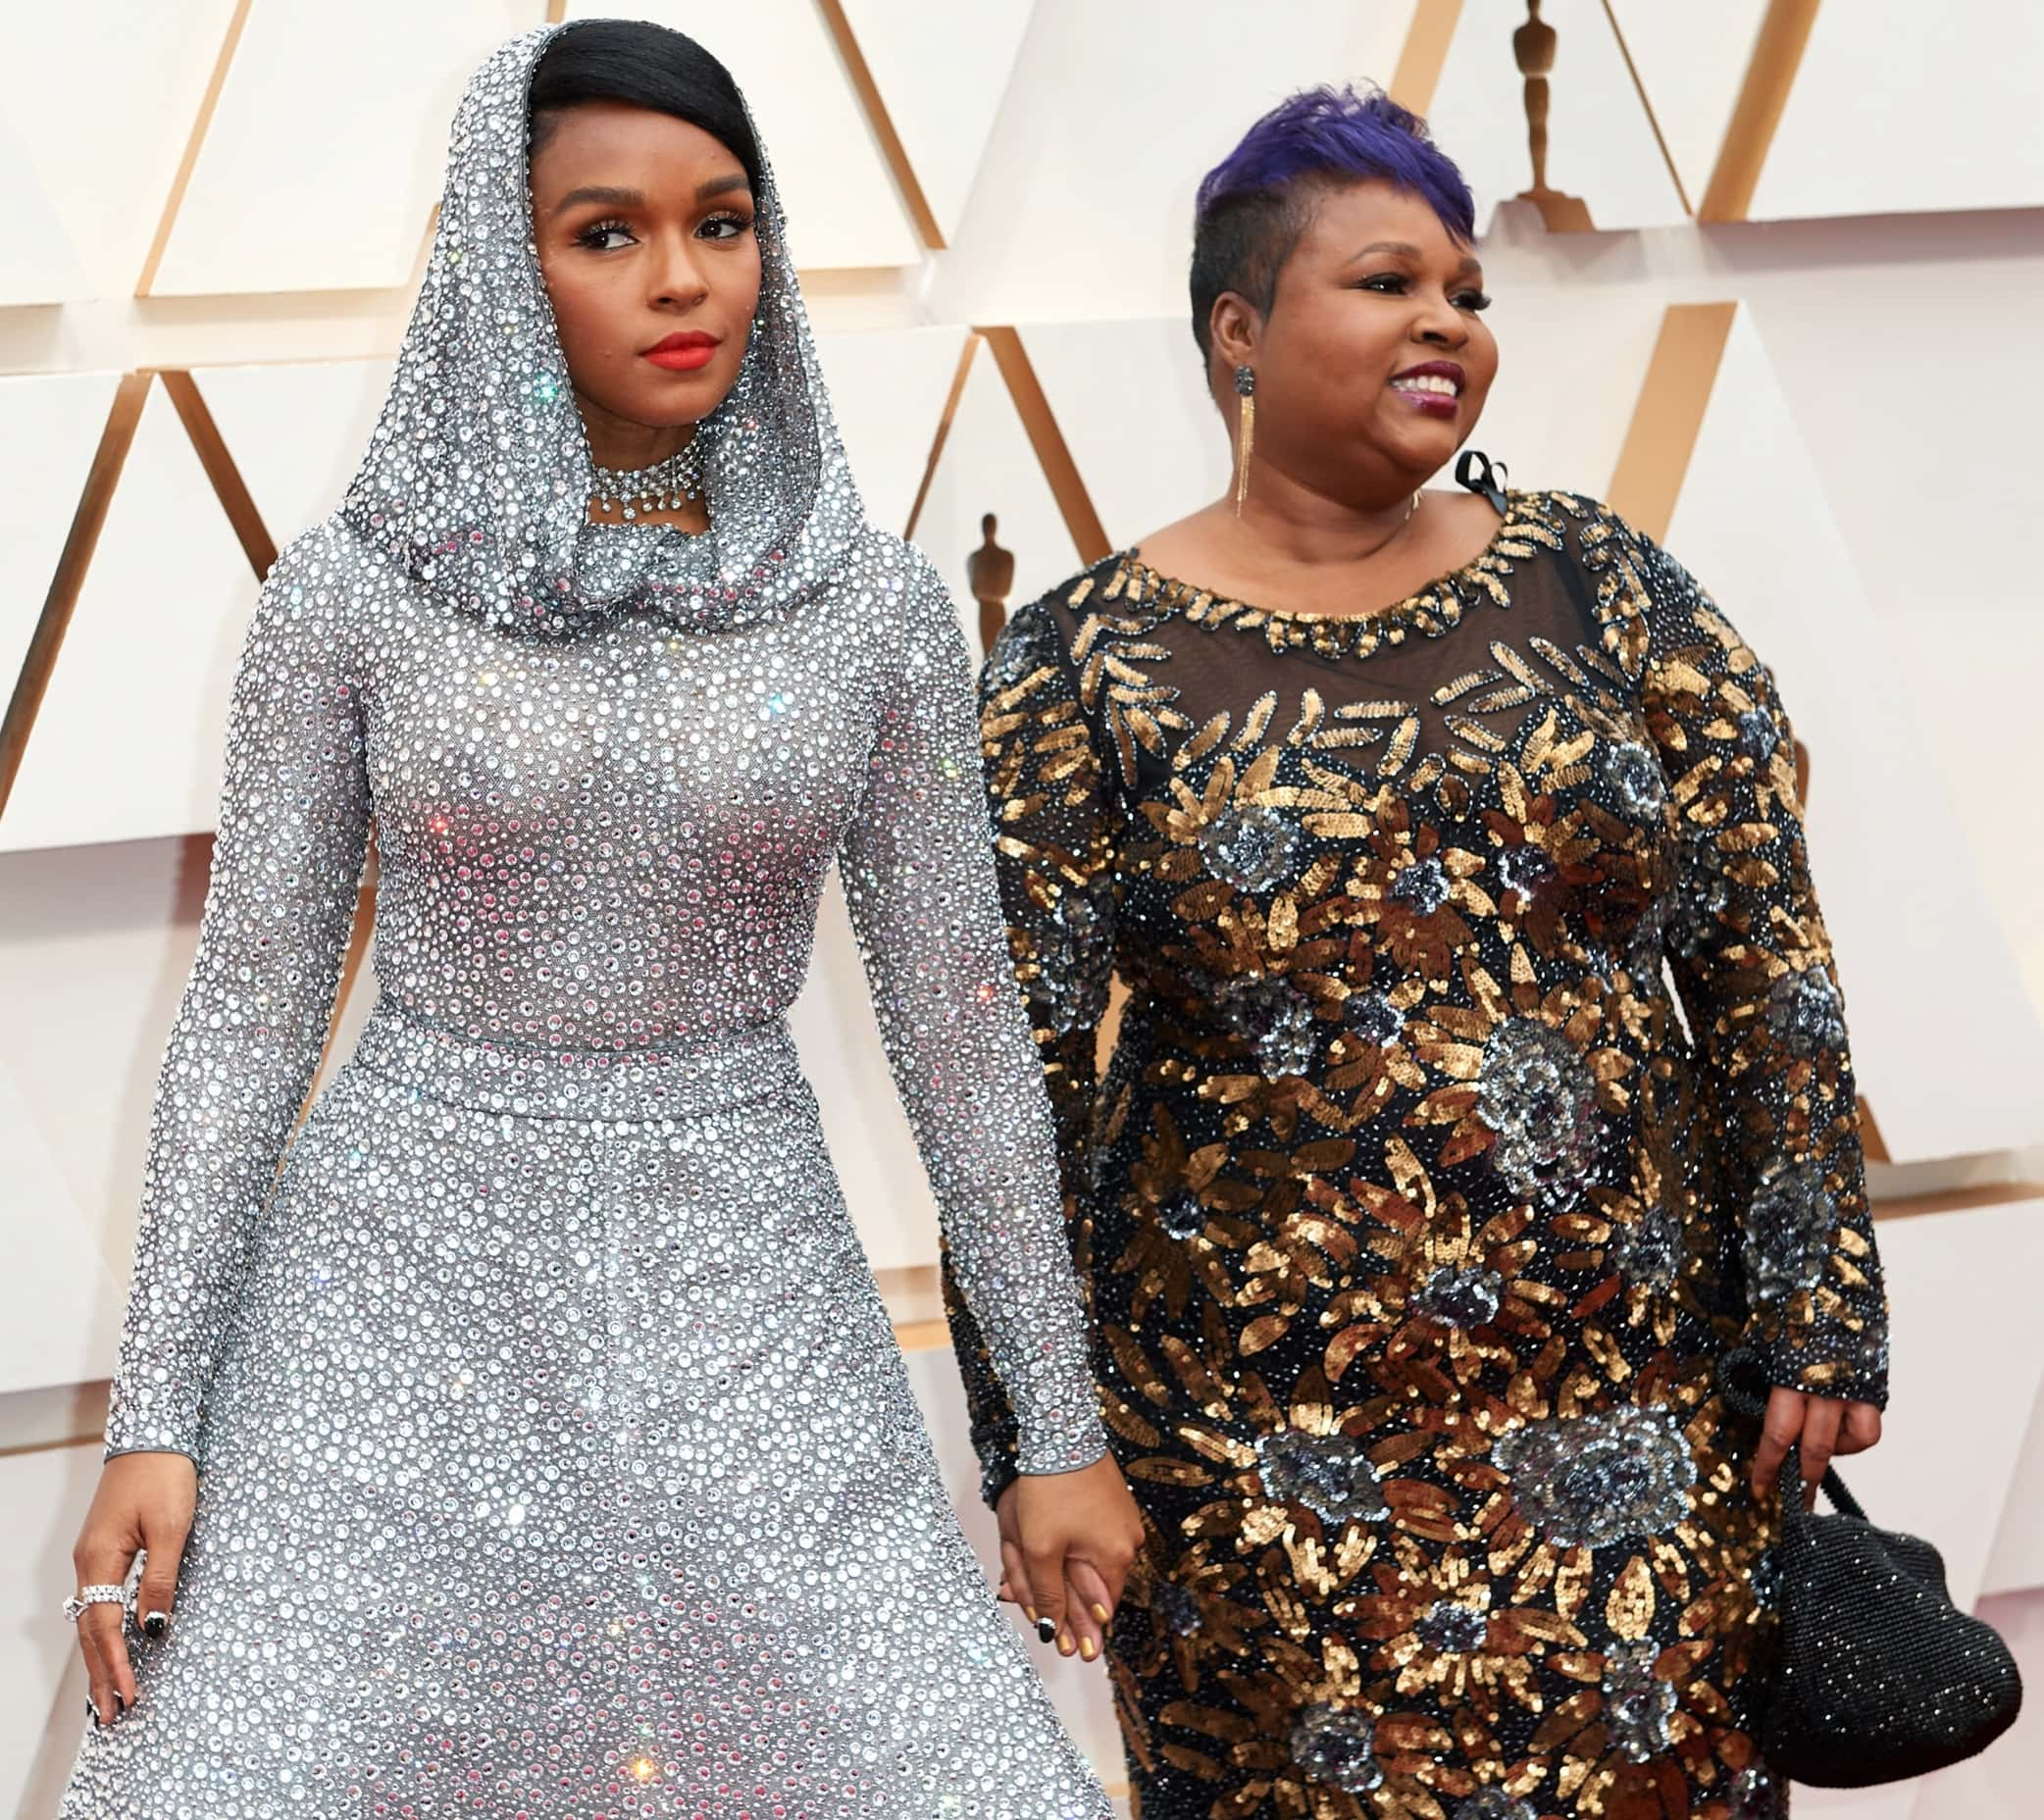 Janelle Monáe with her mom Janet at the 2020 Academy Awards